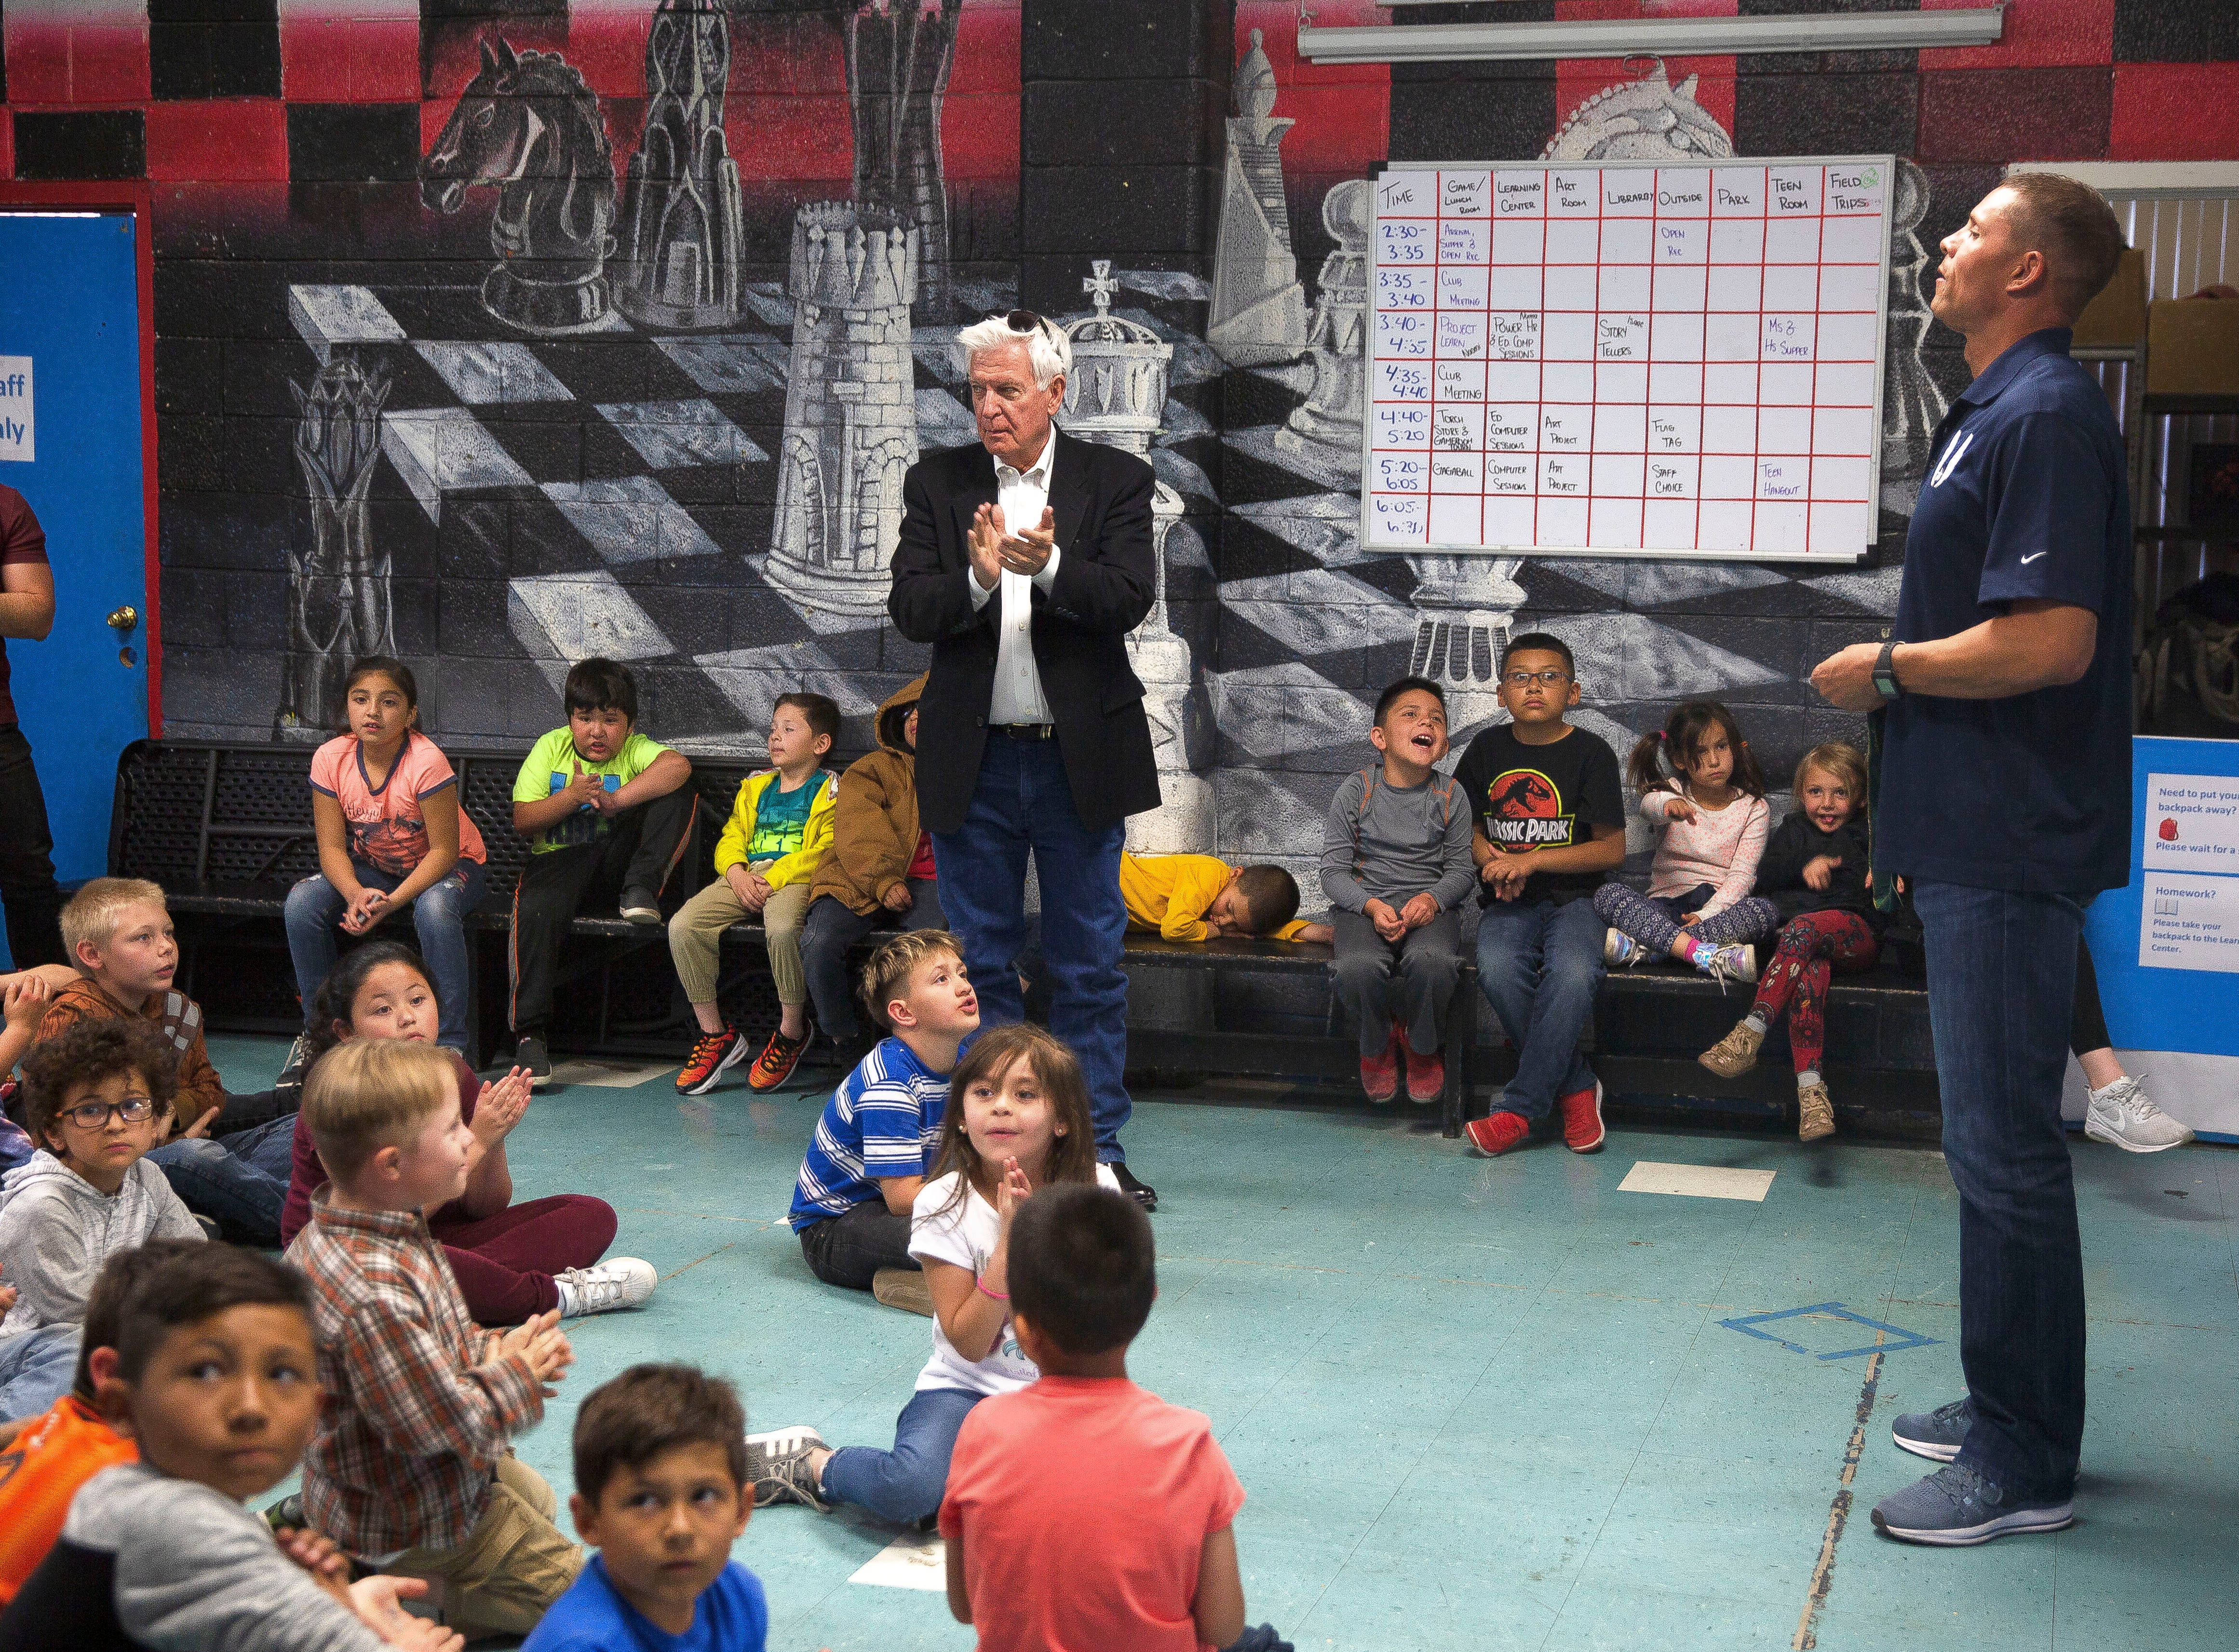 Olympic gold medalist Dan O'Brien speaks to children at the Las Cruces Boys and Girl's Club Wednesday, April 17, 2019.